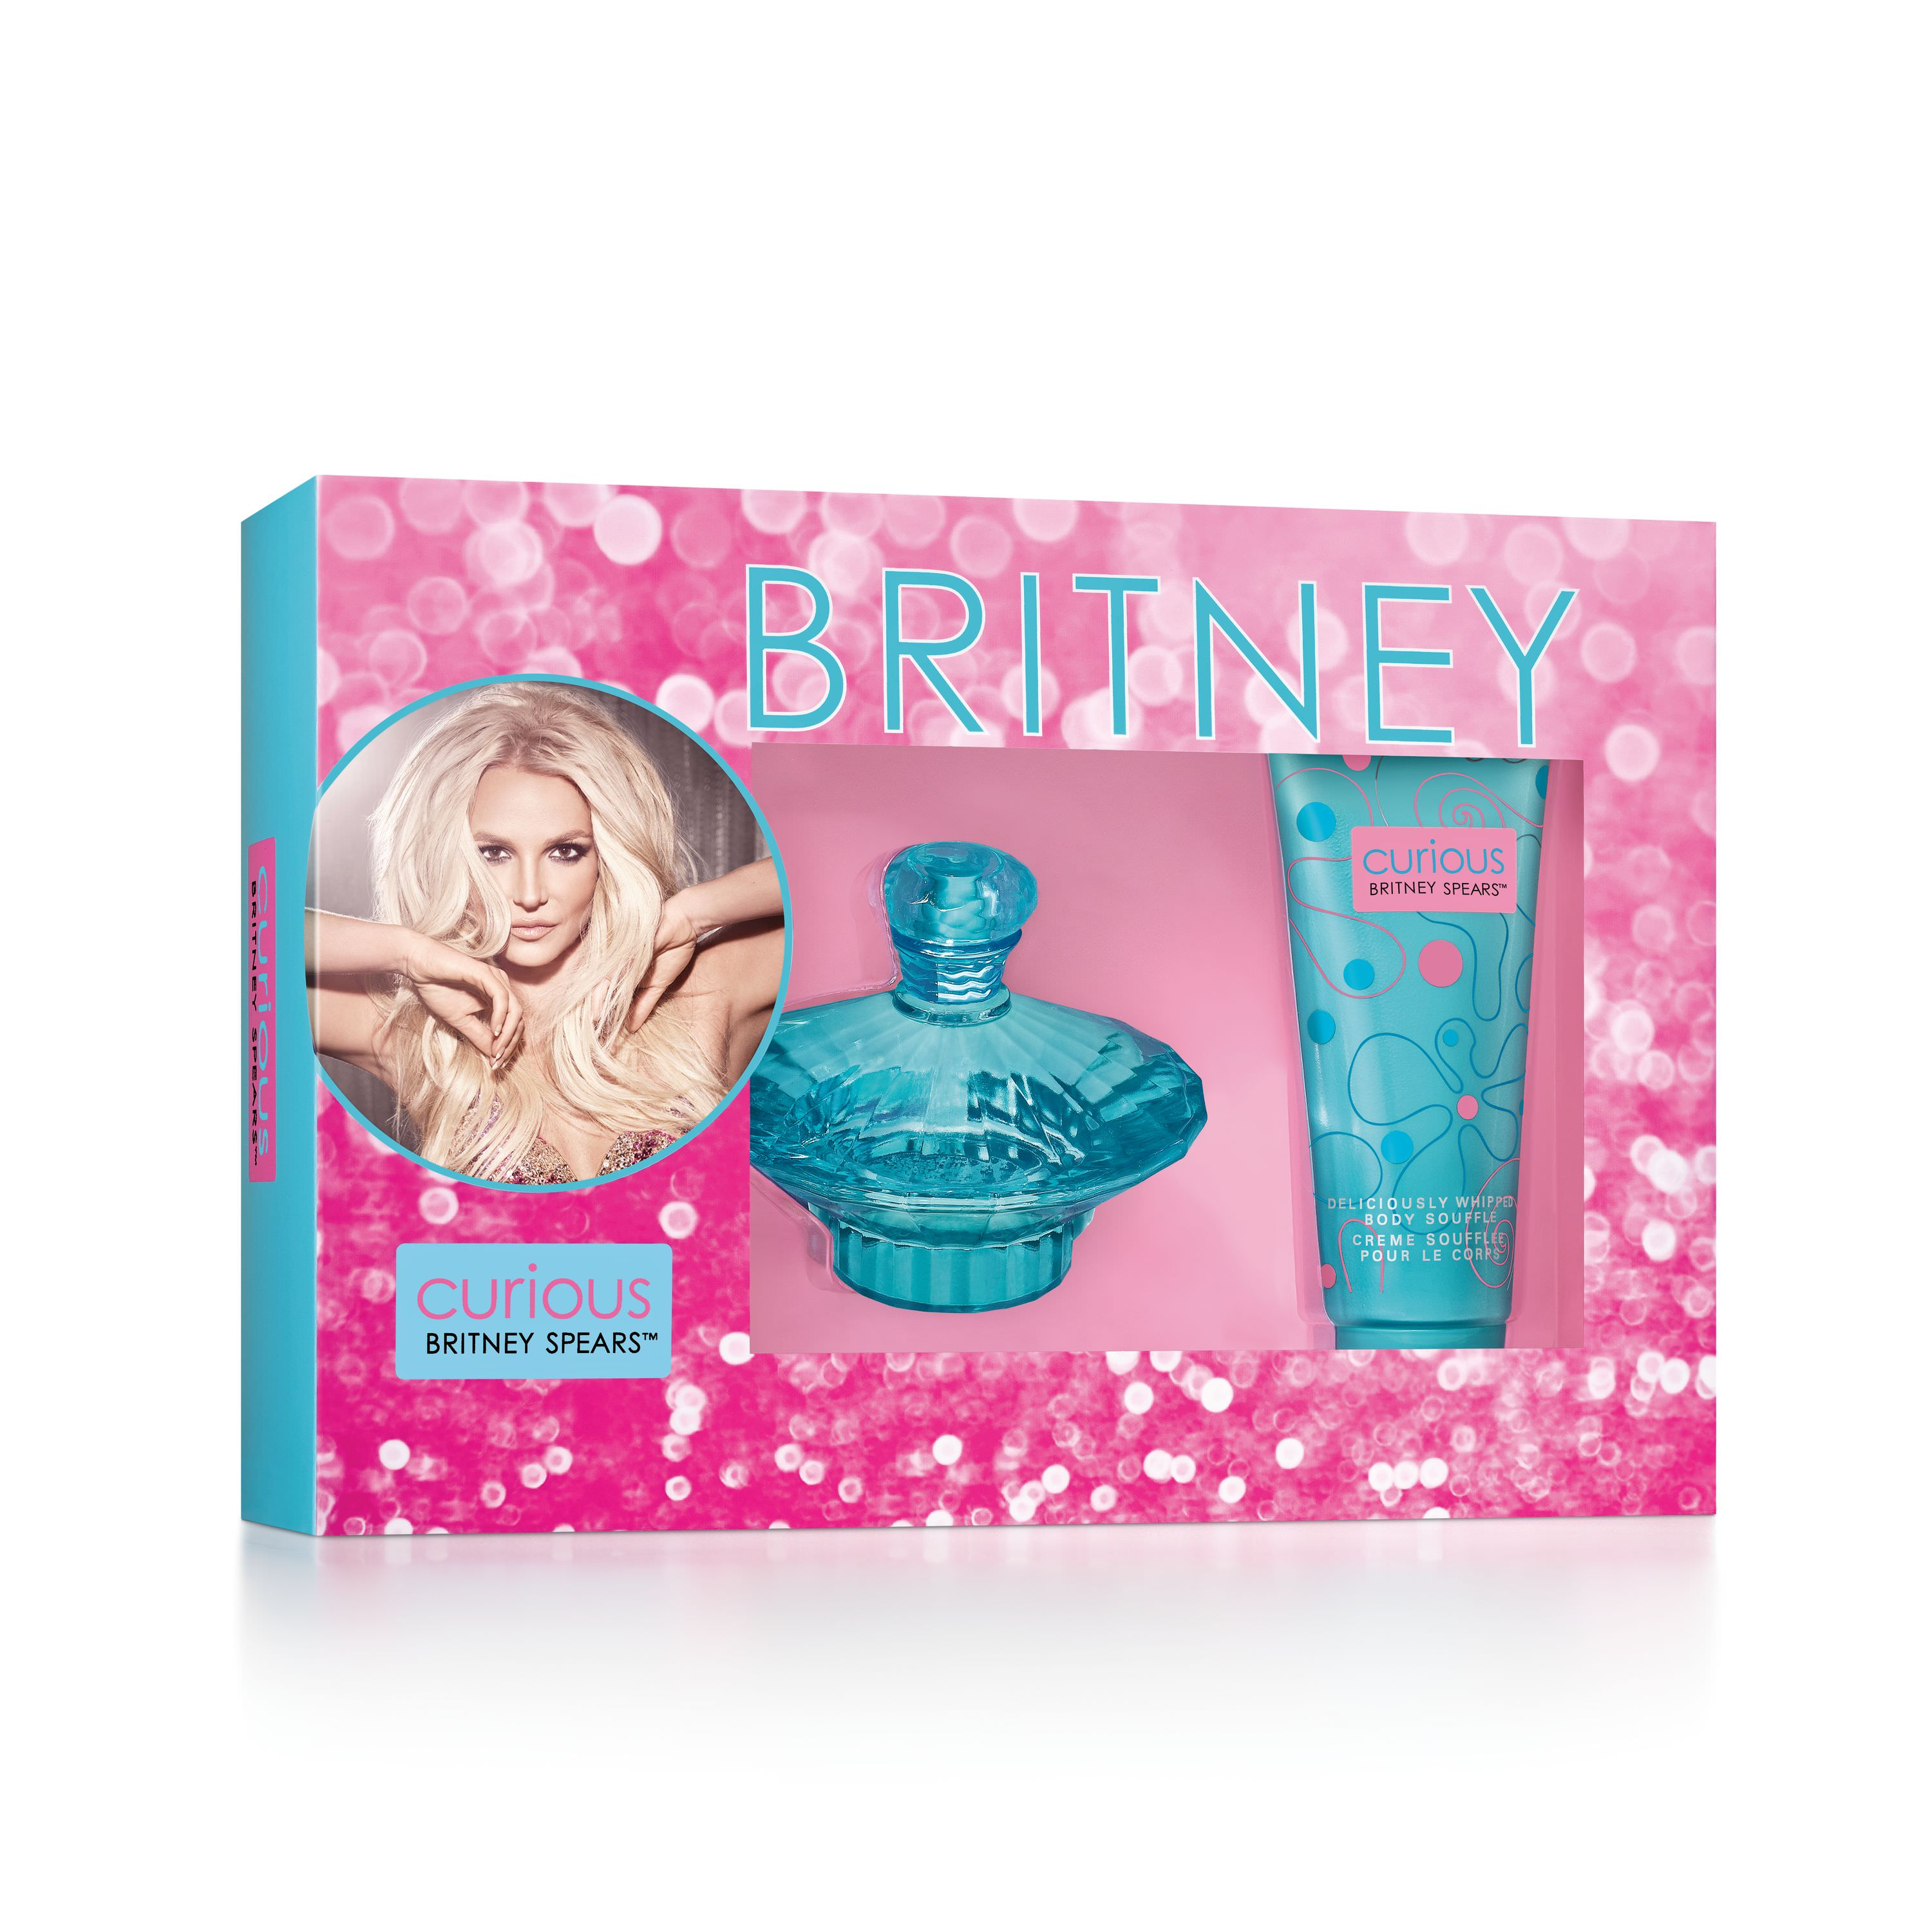 Britney Spears Curious Fragrance Gift Set for Women, 2 piece